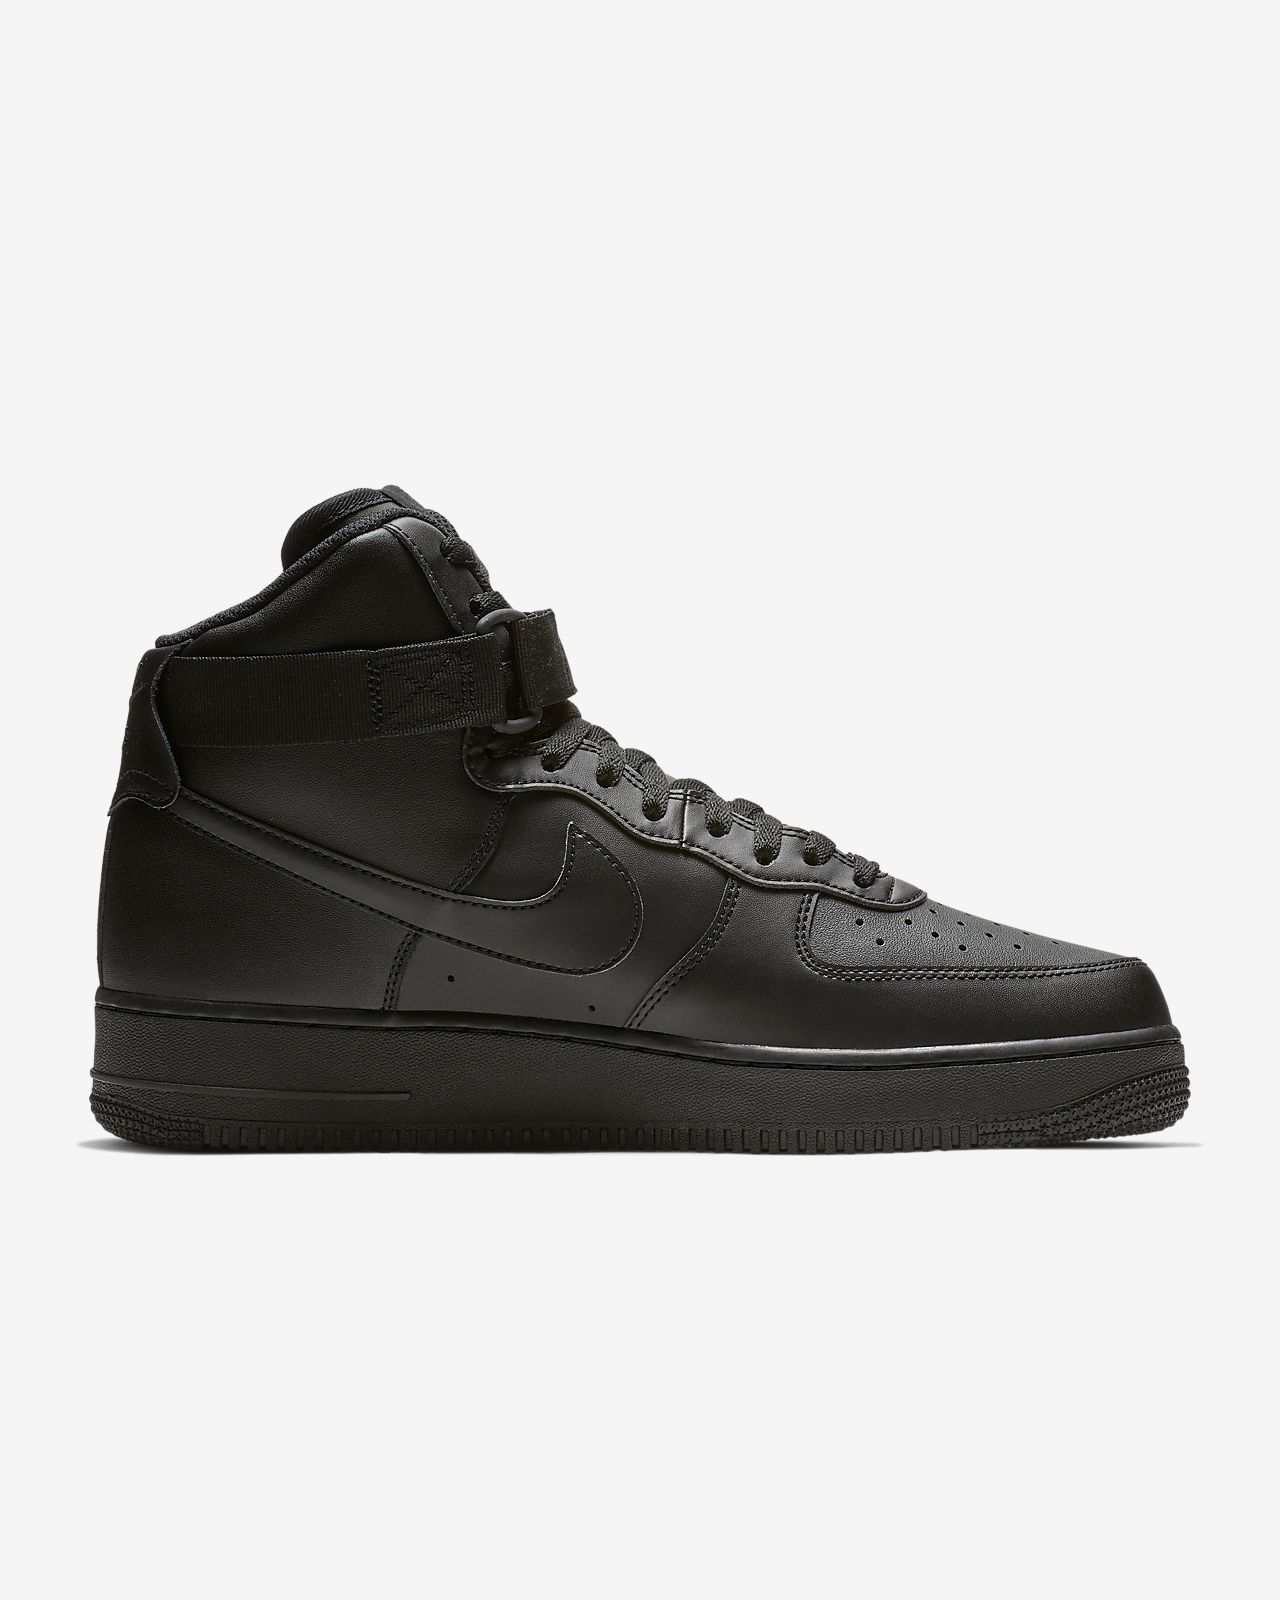 3e85f6baa3f Nike Air Force 1 High 07 Men's Shoe